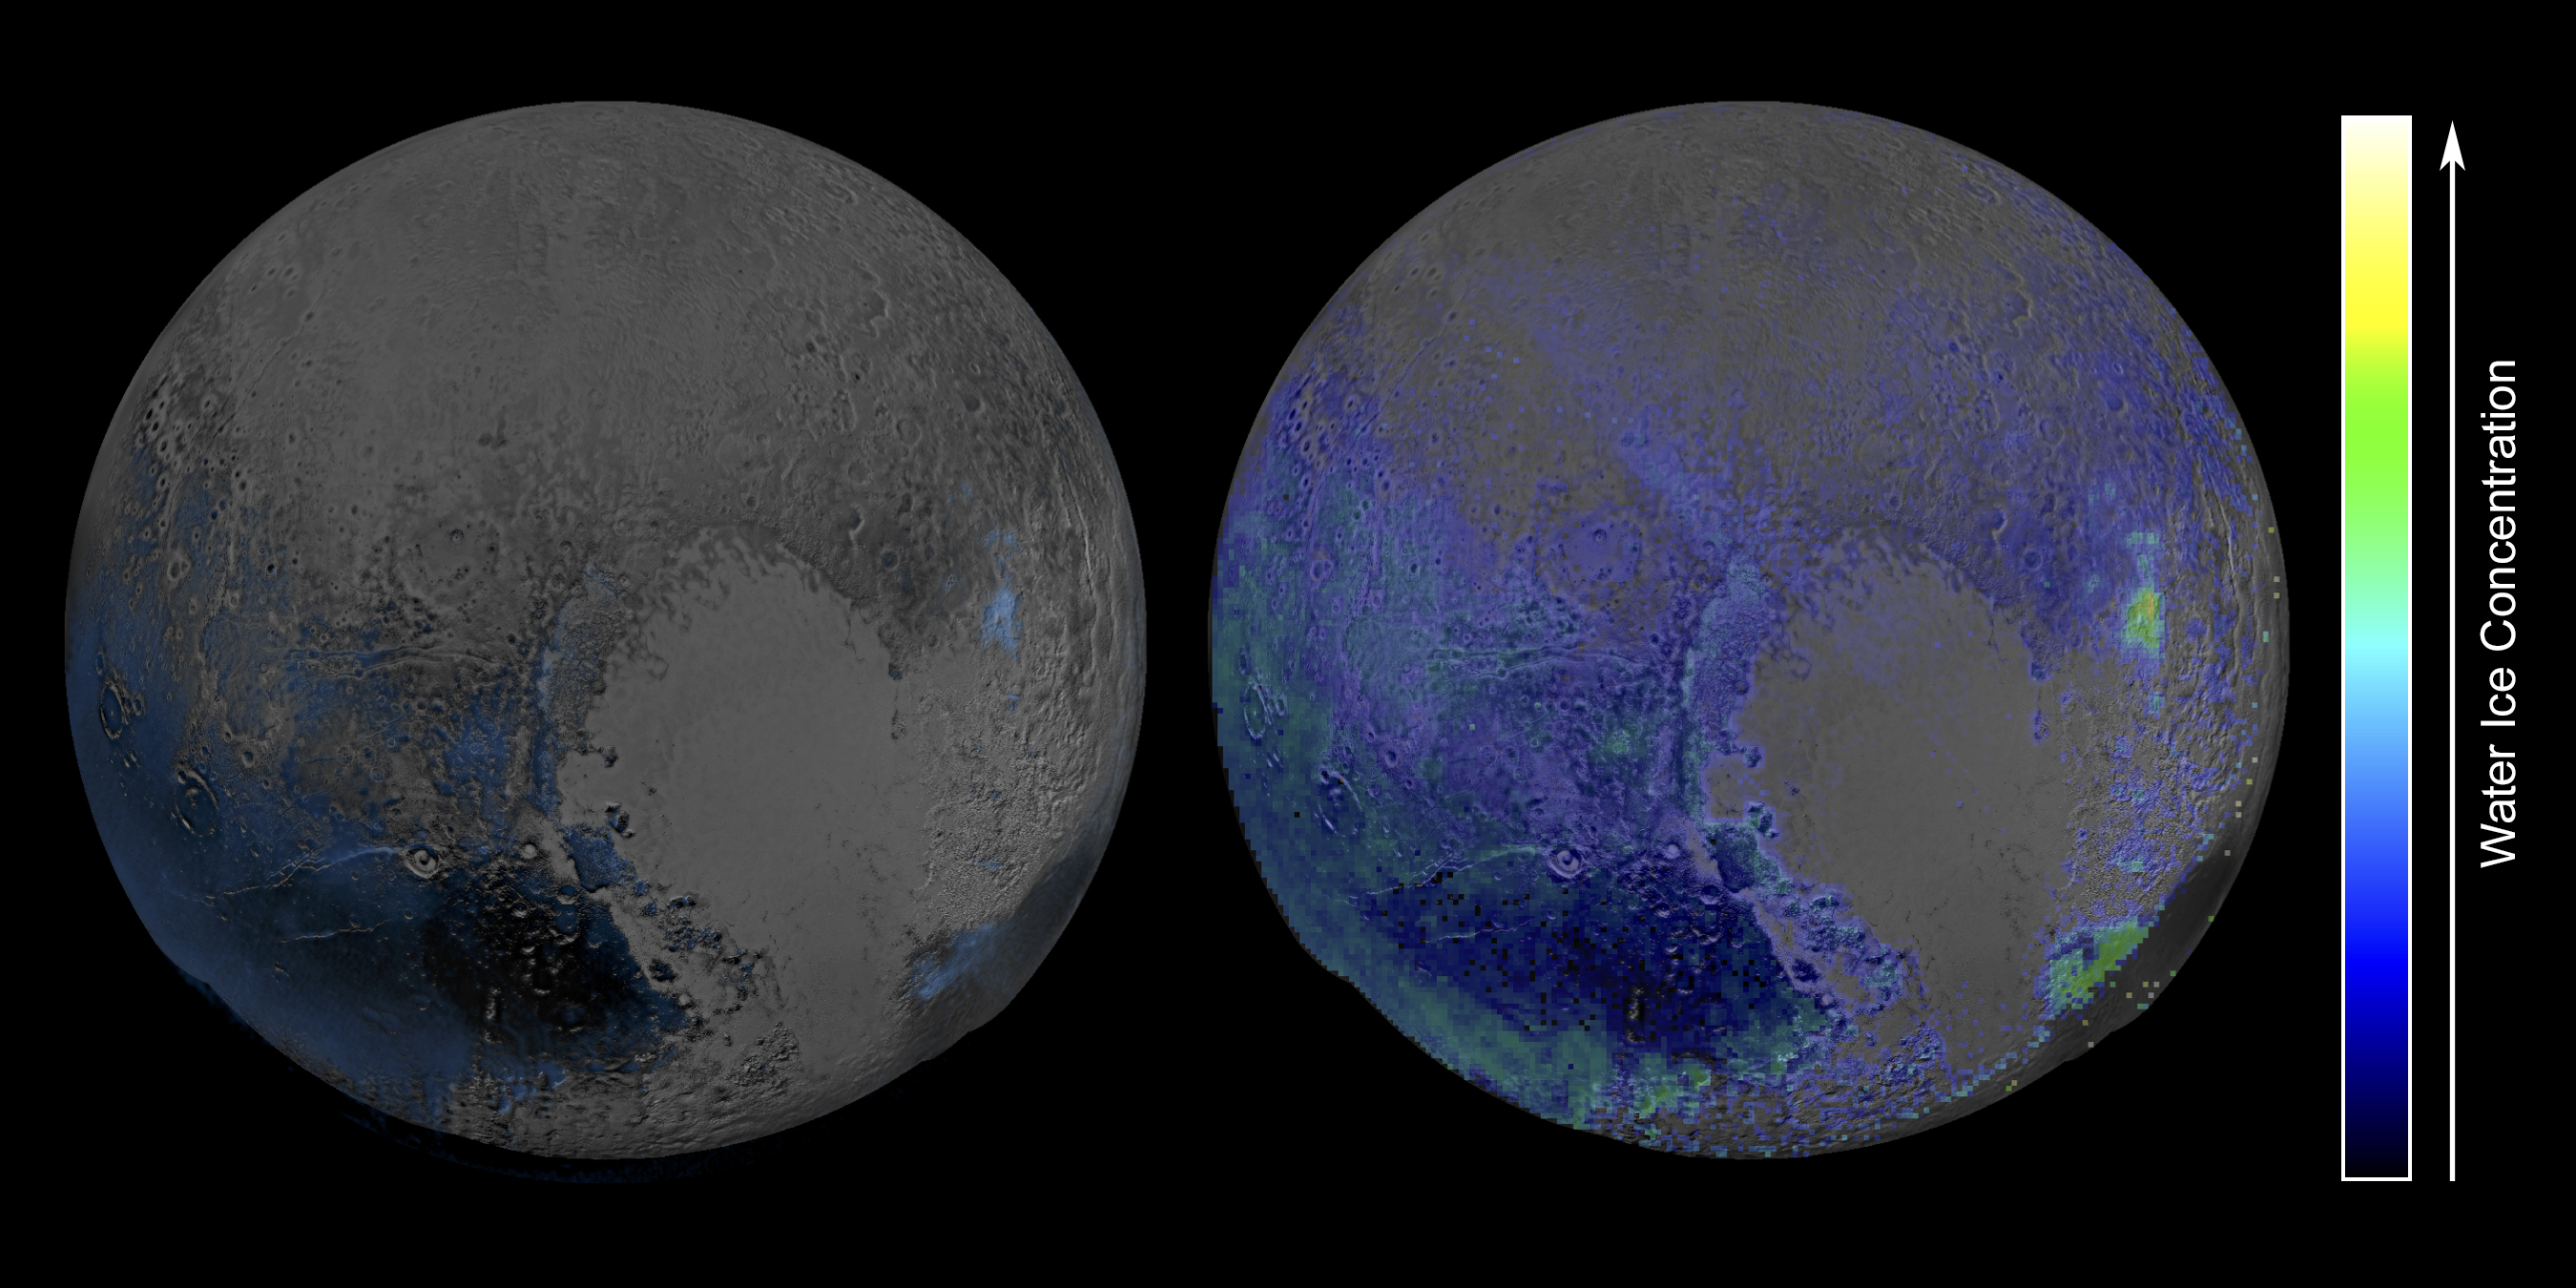 This false-color image, derived from observations in infrared light by the Ralph/Linear Etalon Imaging Spectral Array (LEISA) instrument, shows where the spectral features of water ice are abundant on Pluto's surface. It is based on two LEISA scans of Pluto obtained on July 14, 2015, from a range of about 67,000 miles (108,000 kilometers). The map on the right incorporates a more sensitive model accounting for the contributions of Pluto's various ices all together, revealing more water ice deposits. Credit: NASA/Johns Hopkins University Applied Physics Laboratory/Southwest Research Institute